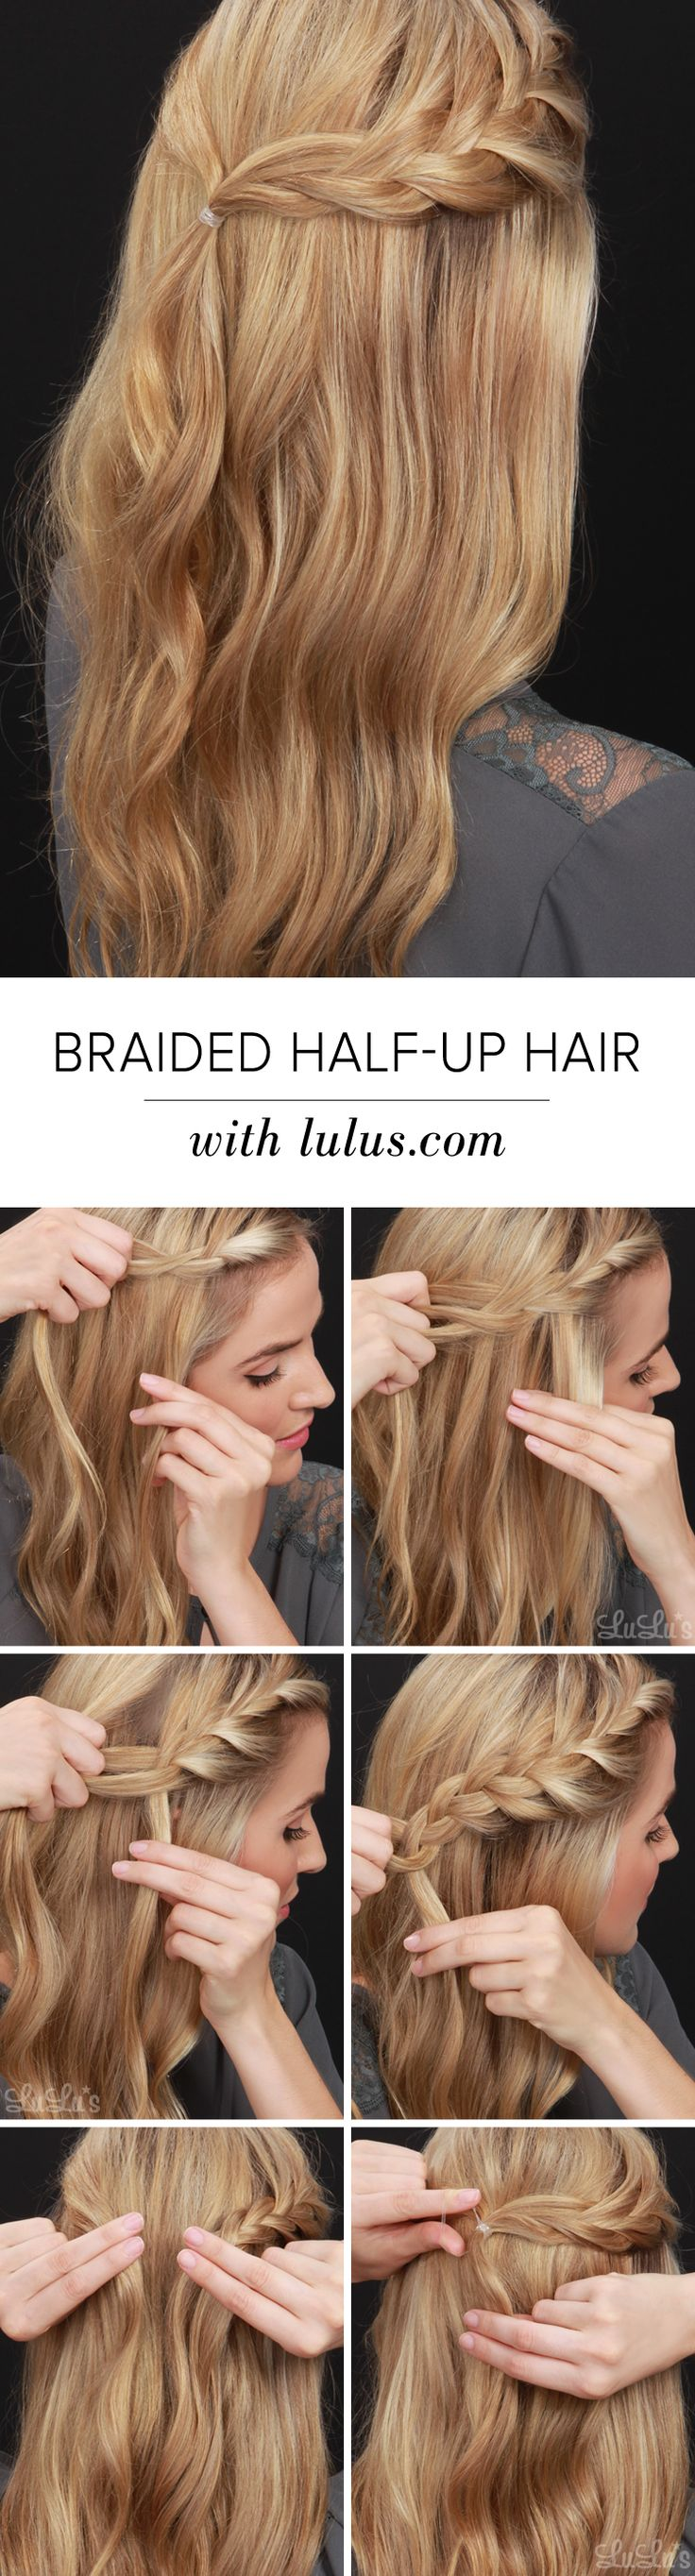 LuLu*s How-To: Half-Up Braided Hair Tutorial at LuLus.com!